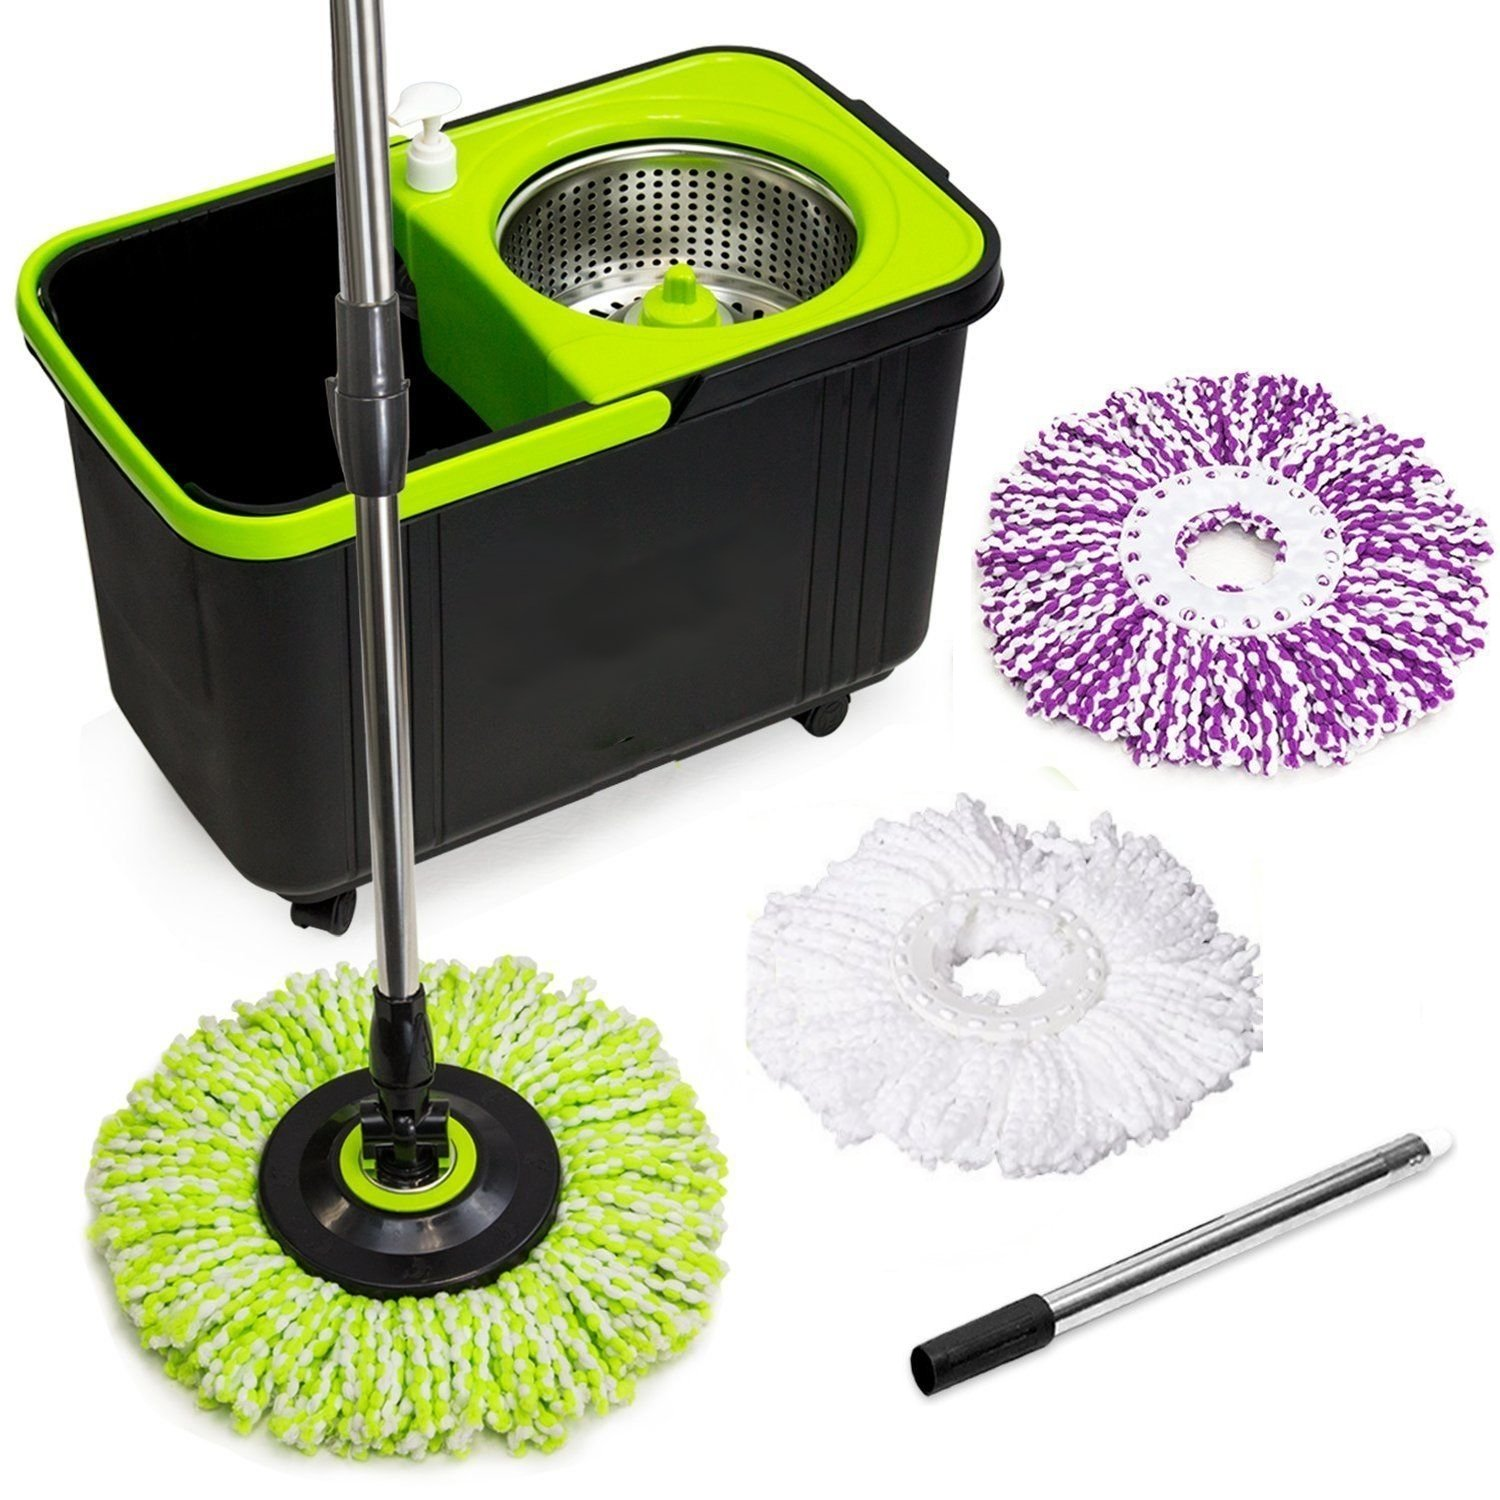 Cleaning Solutions 79117 Stainless Steel Spin Mop with 3 Microfiber Mop Head Refills, Soap Dispenser, 4 Wheels and Extendable Pole by Cleaning Solutions